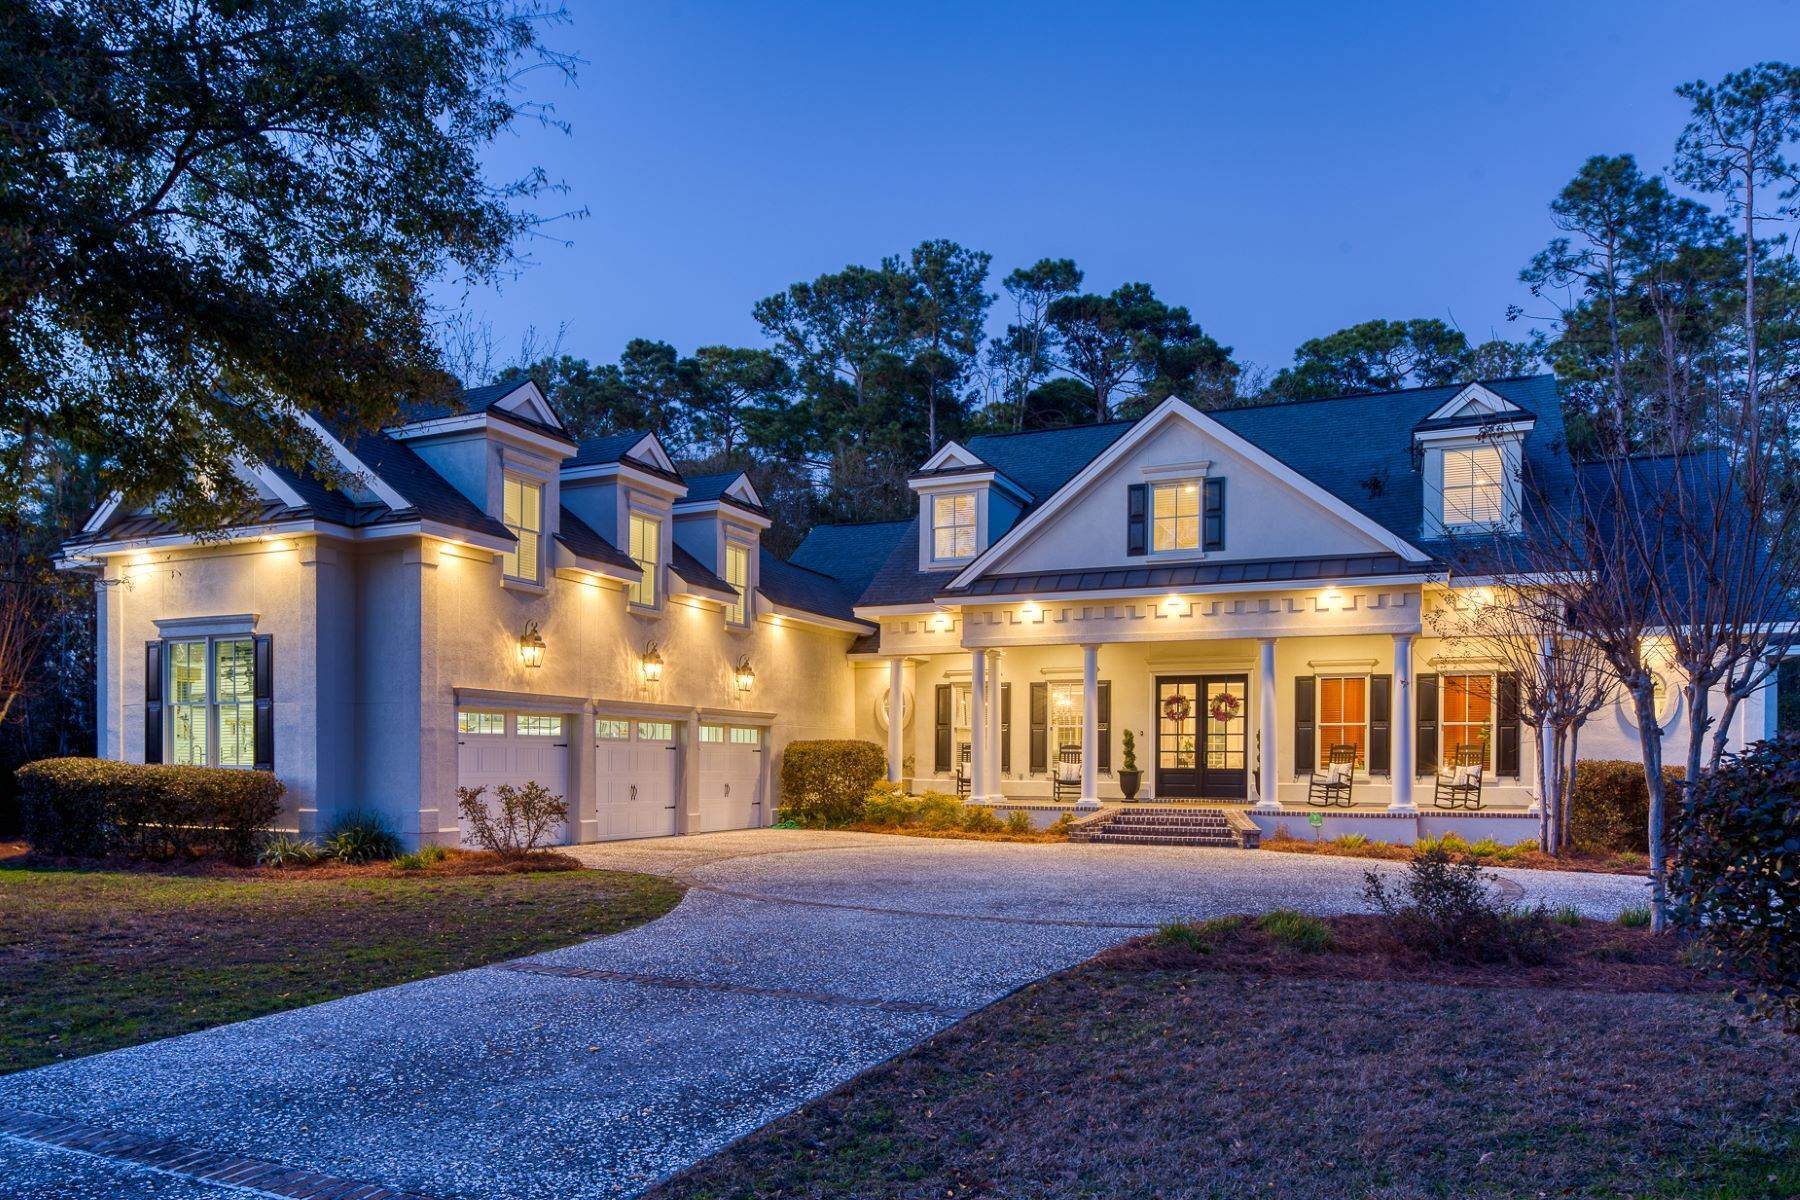 Single Family Homes for Sale at Custom Home In Prestigious Moon River Community 108 Waterway Drive Skidaway Island, Georgia 31411 United States